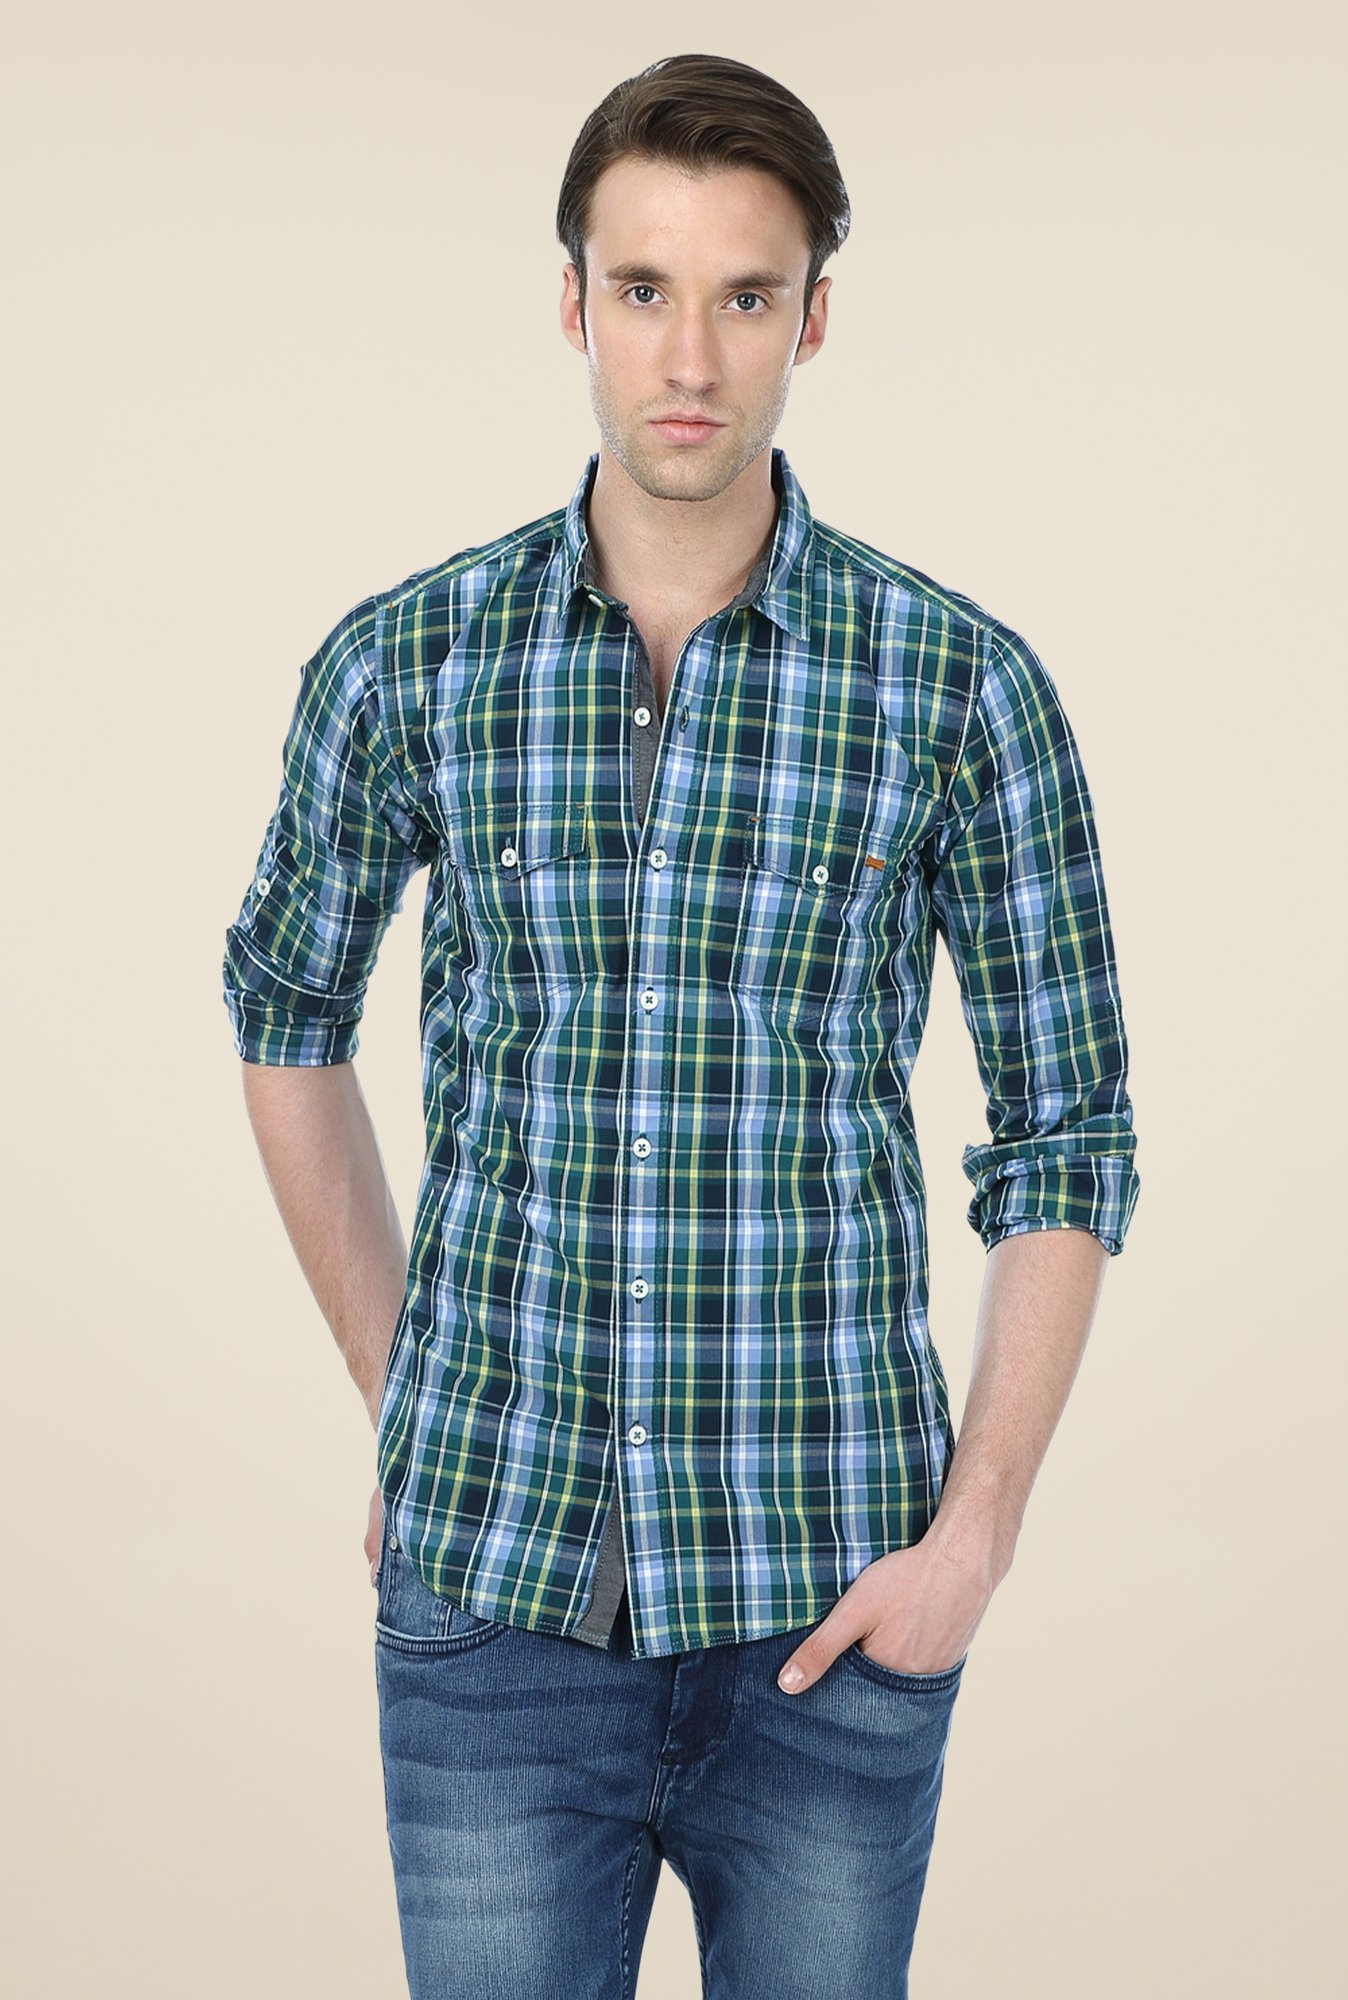 Basics Blue & Navy Checks Shirt